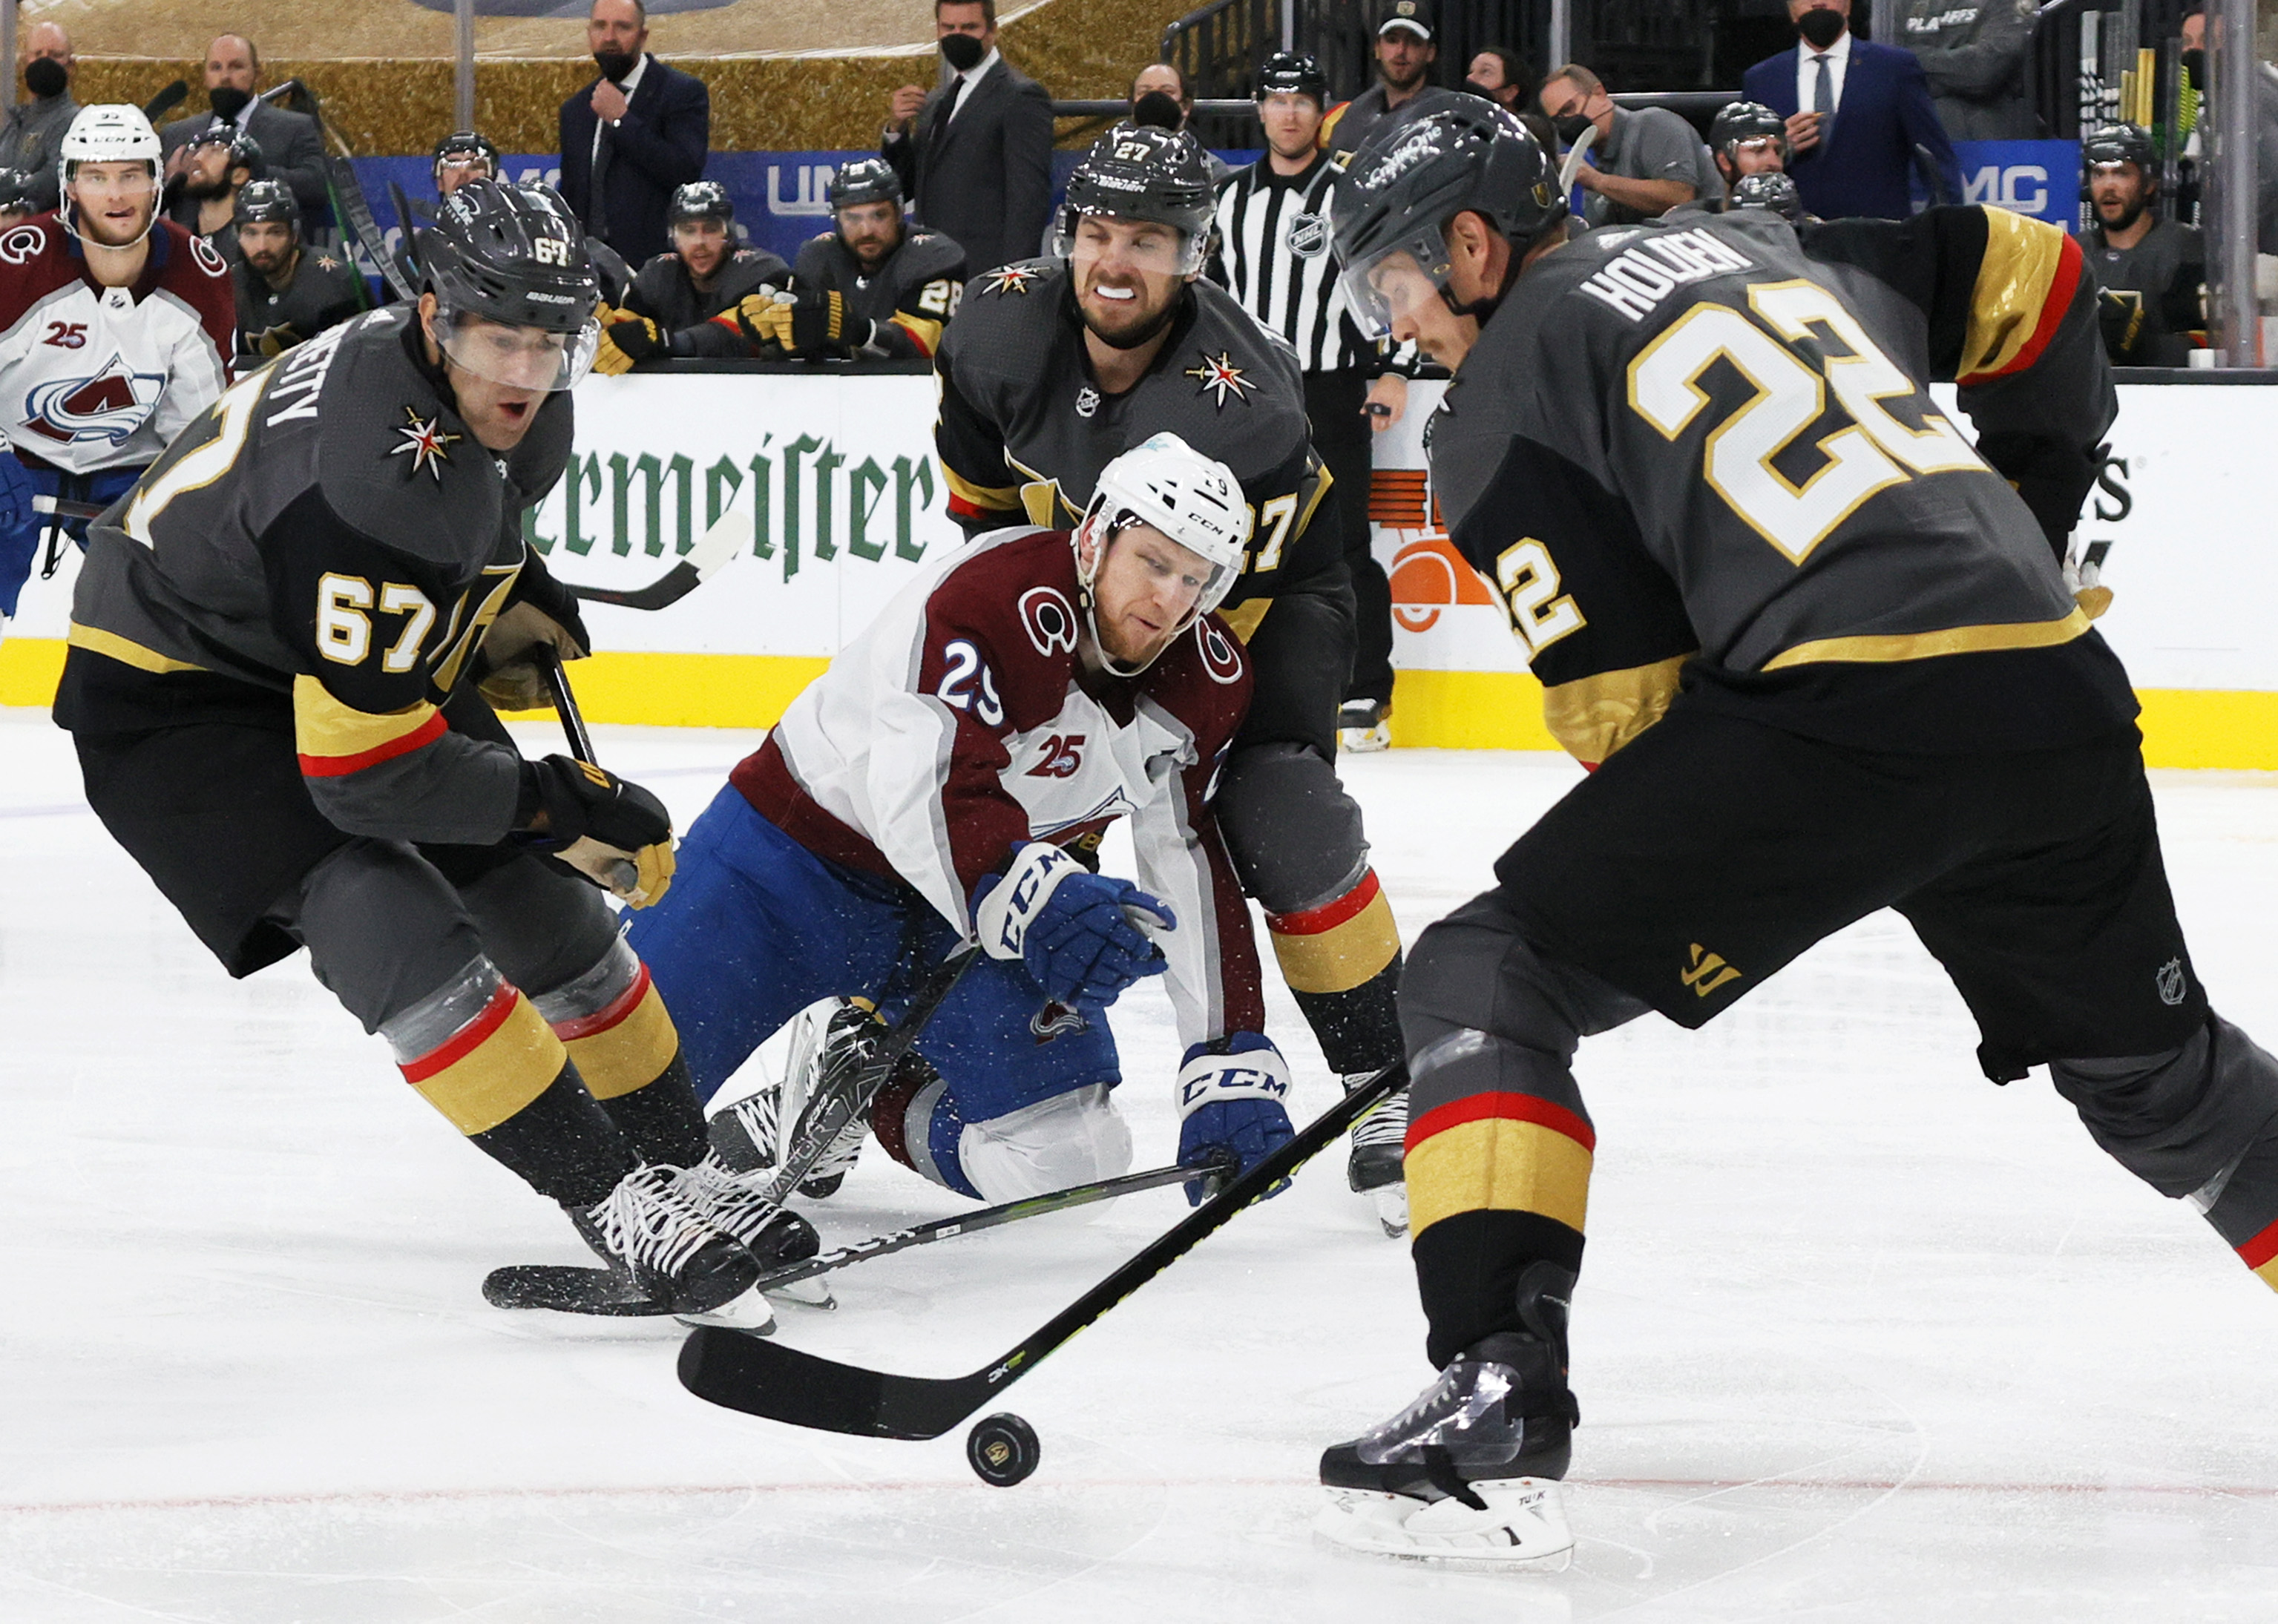 Nathan MacKinnon #29 of the Colorado Avalanche gets his stick caught in the skate of Max Pacioretty #67 of the Vegas Golden Knights as MacKinnon carried the puck against Shea Theodore #27 and Nick Holden #22 of the Golden Knights in the third period in Game Three of the Second Round of the 2021 Stanley Cup Playoffs at T-Mobile Arena on June 4, 2021 in Las Vegas, Nevada. The Golden Knights defeated the Avalanche 3-2.